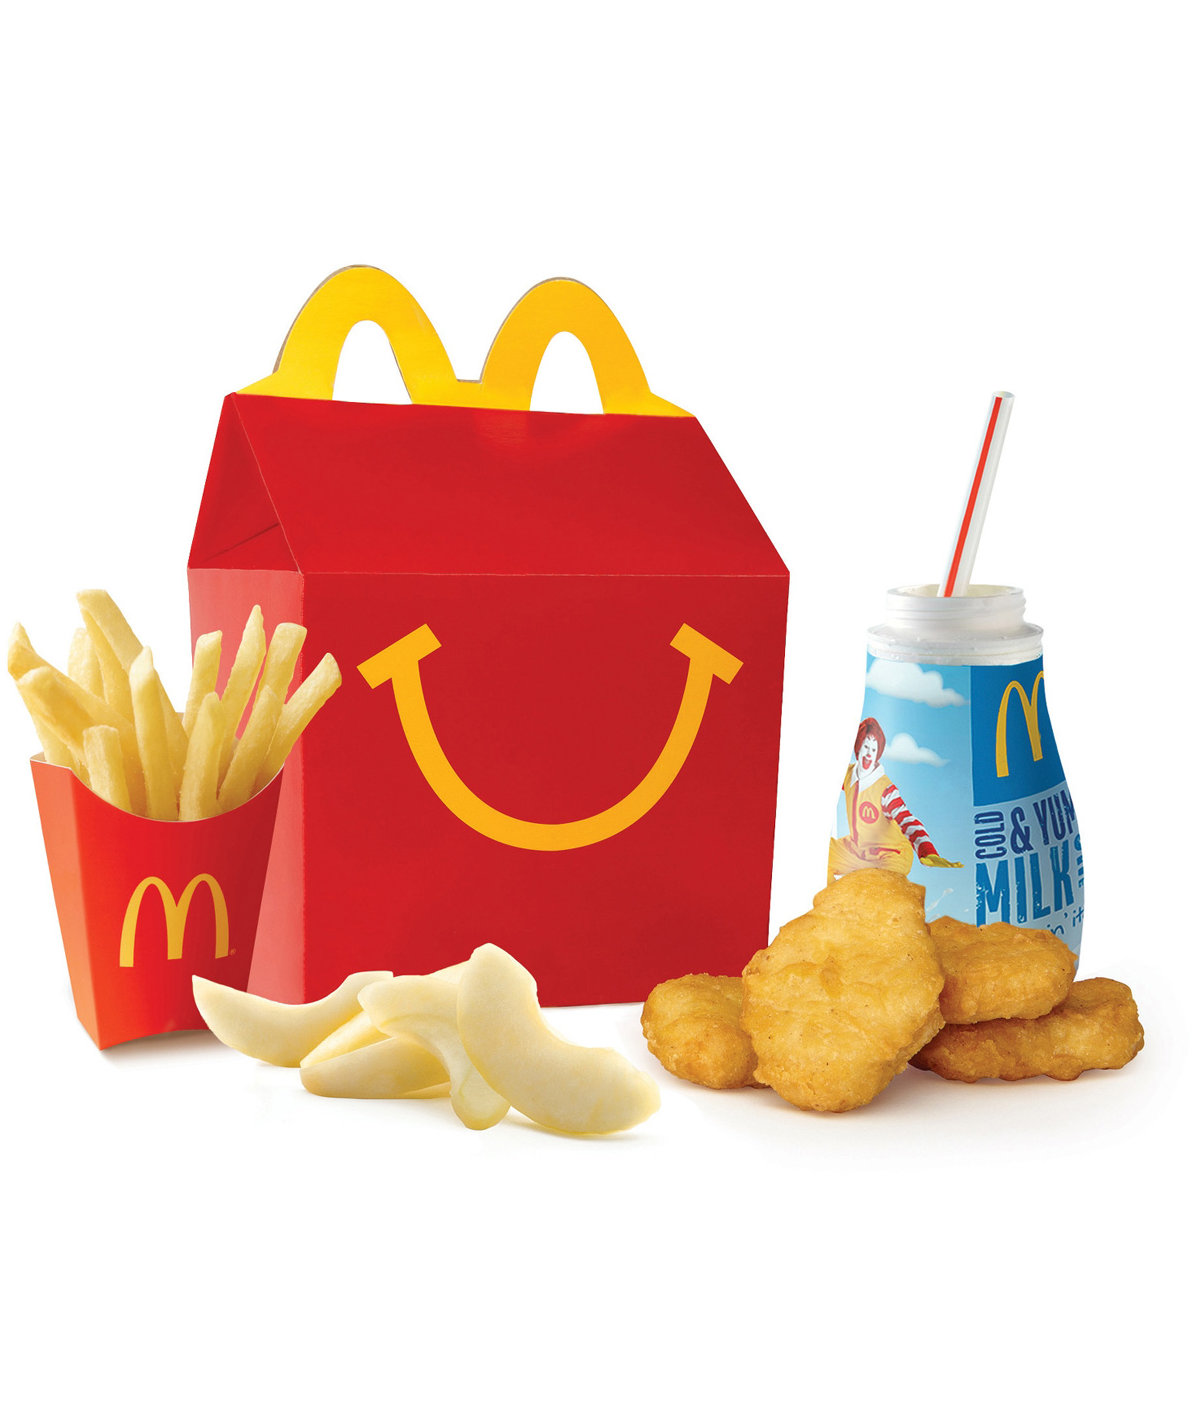 The Healthiest Kid's Meals at Fast Food Chains